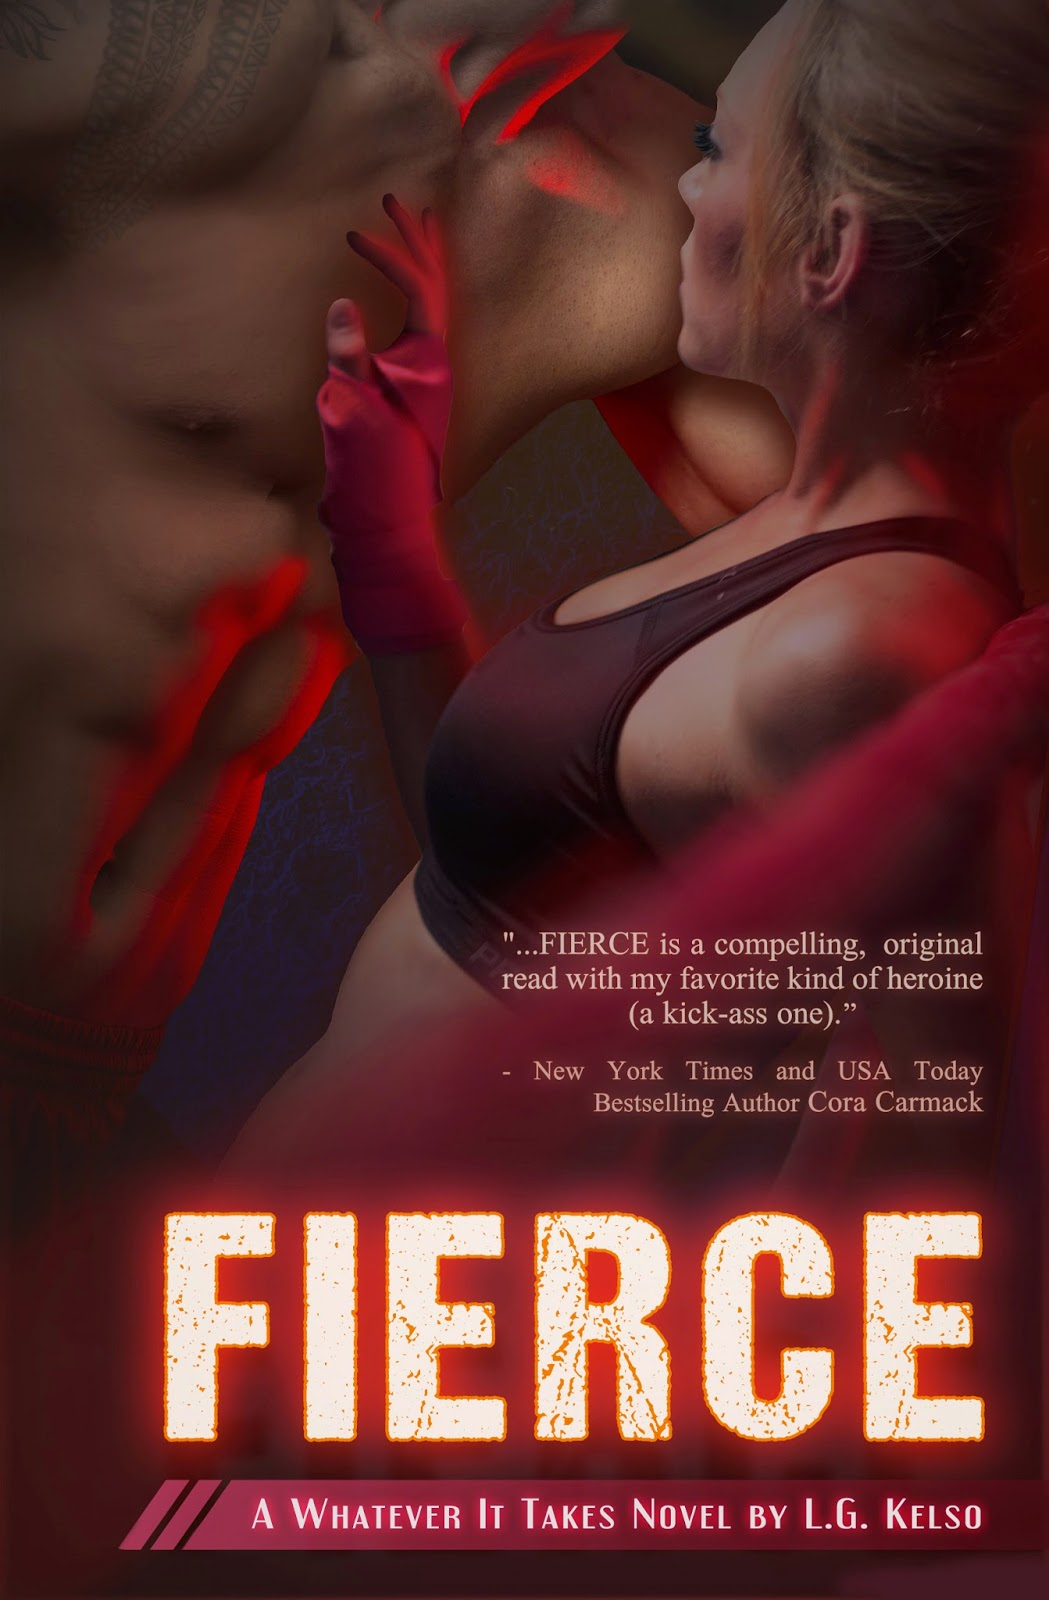 https://www.goodreads.com/book/show/22360301-fierce?from_search=true